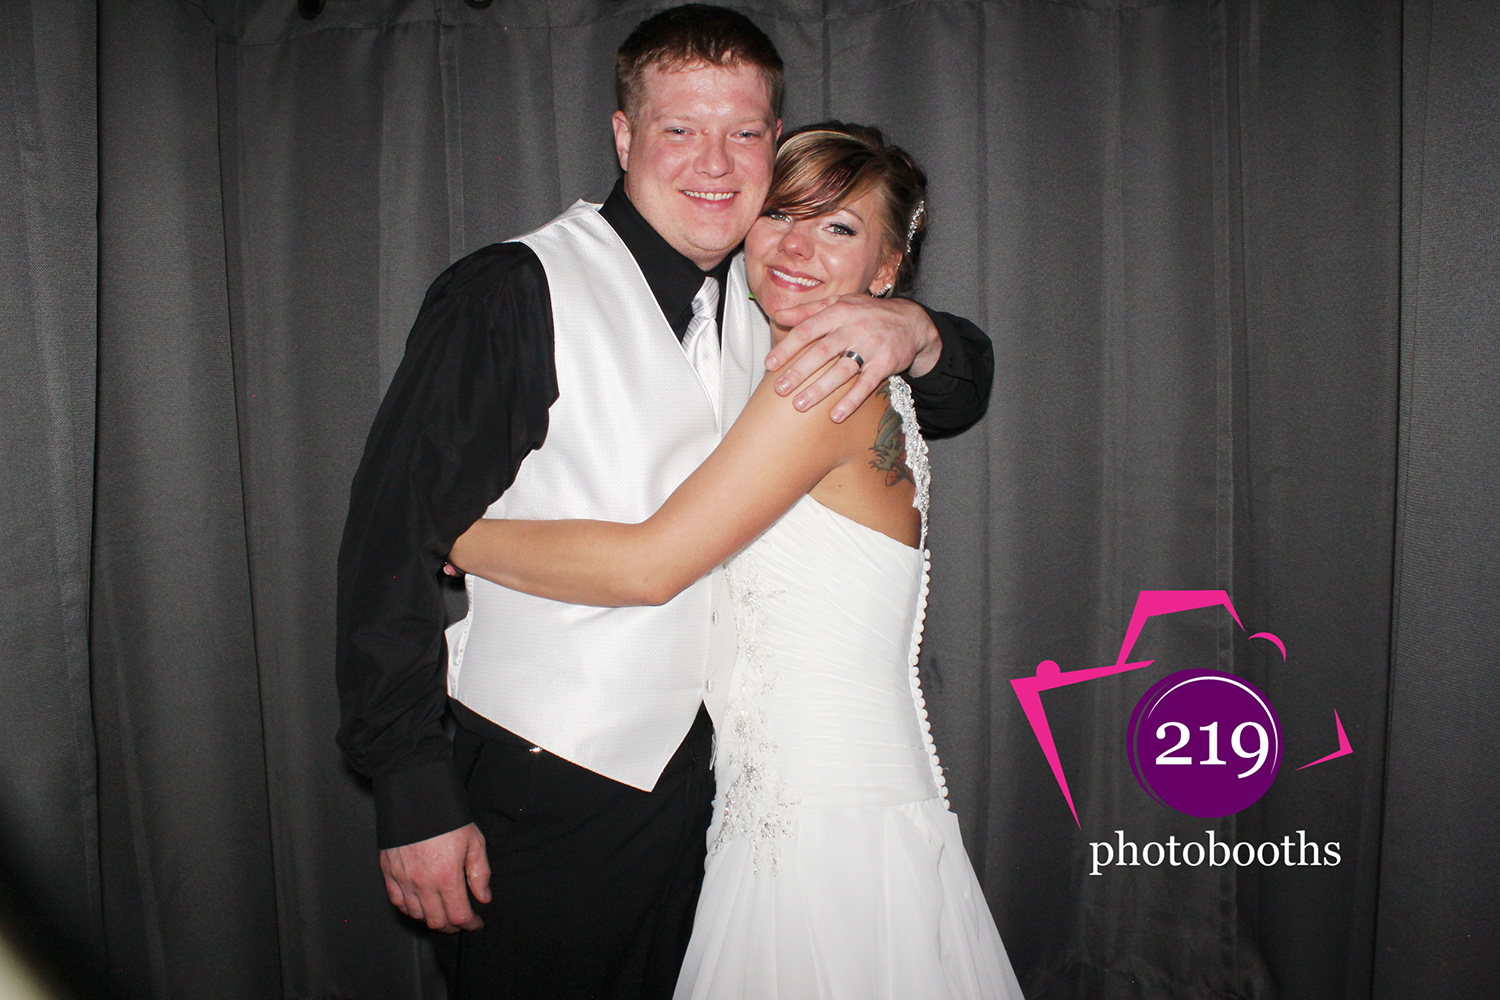 Patrician Banquet Center Photo Booth Bride and Groom